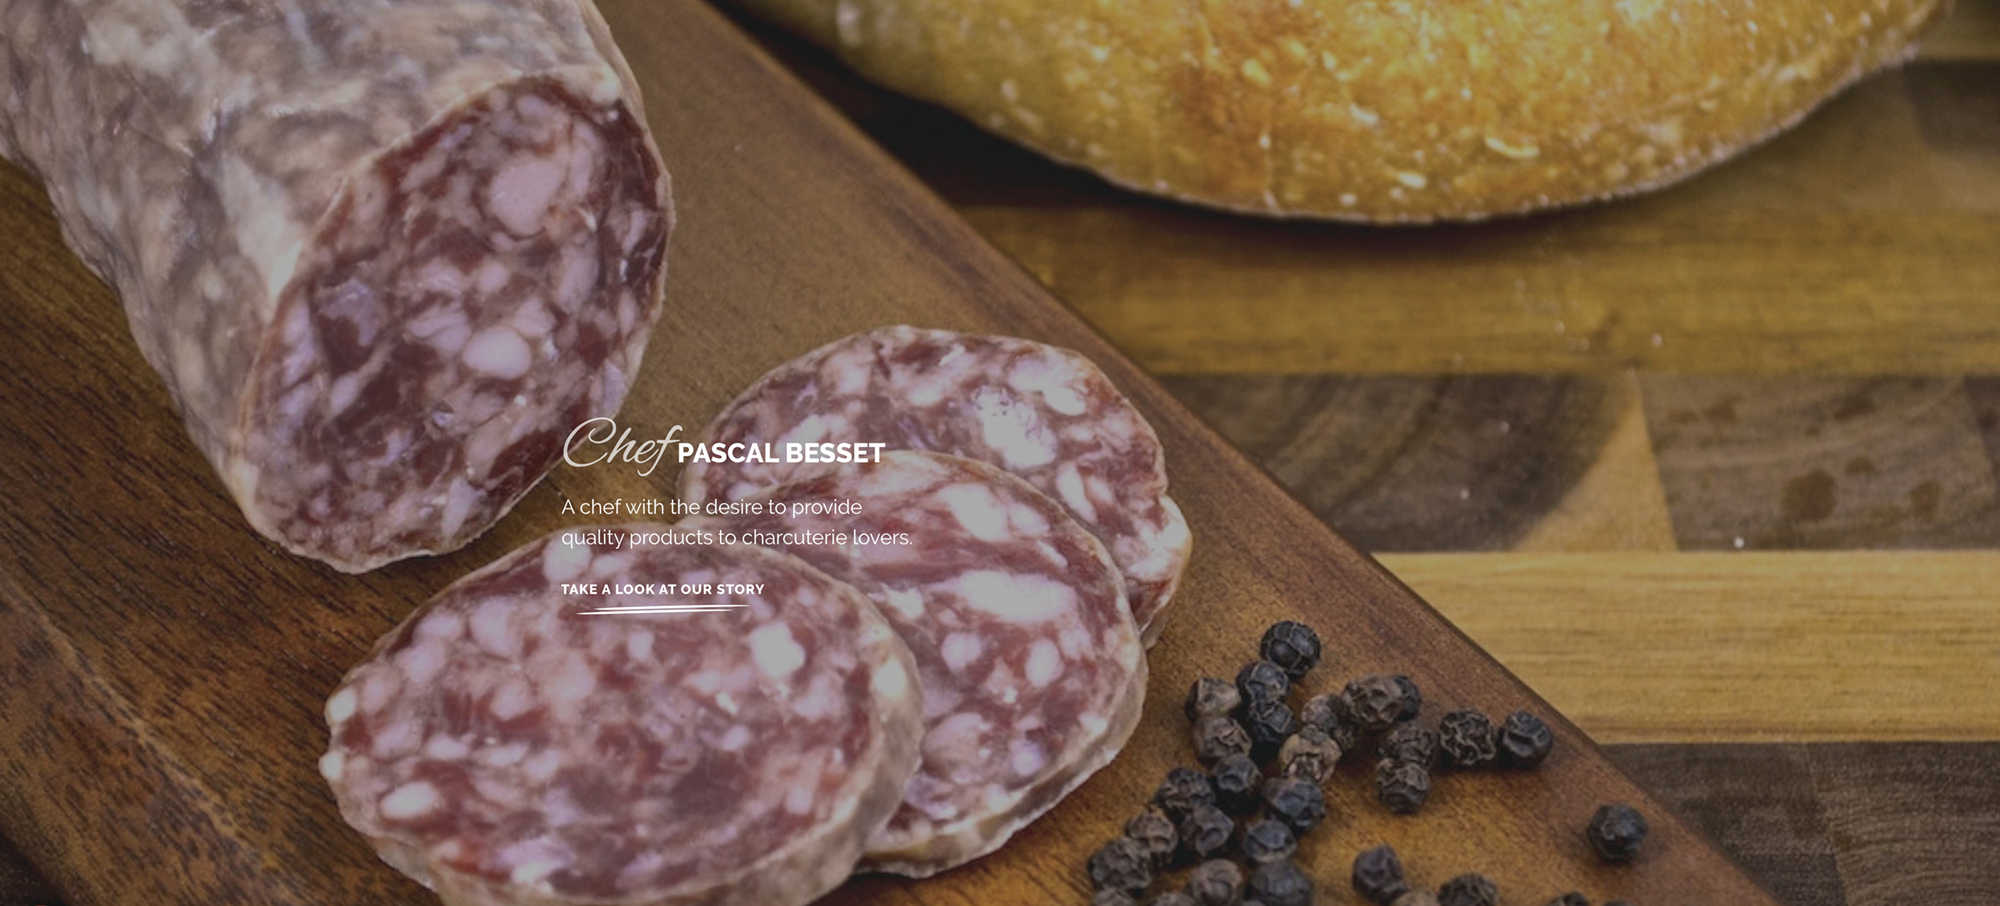 Angels Salumi - quality products to charcuterie lovers